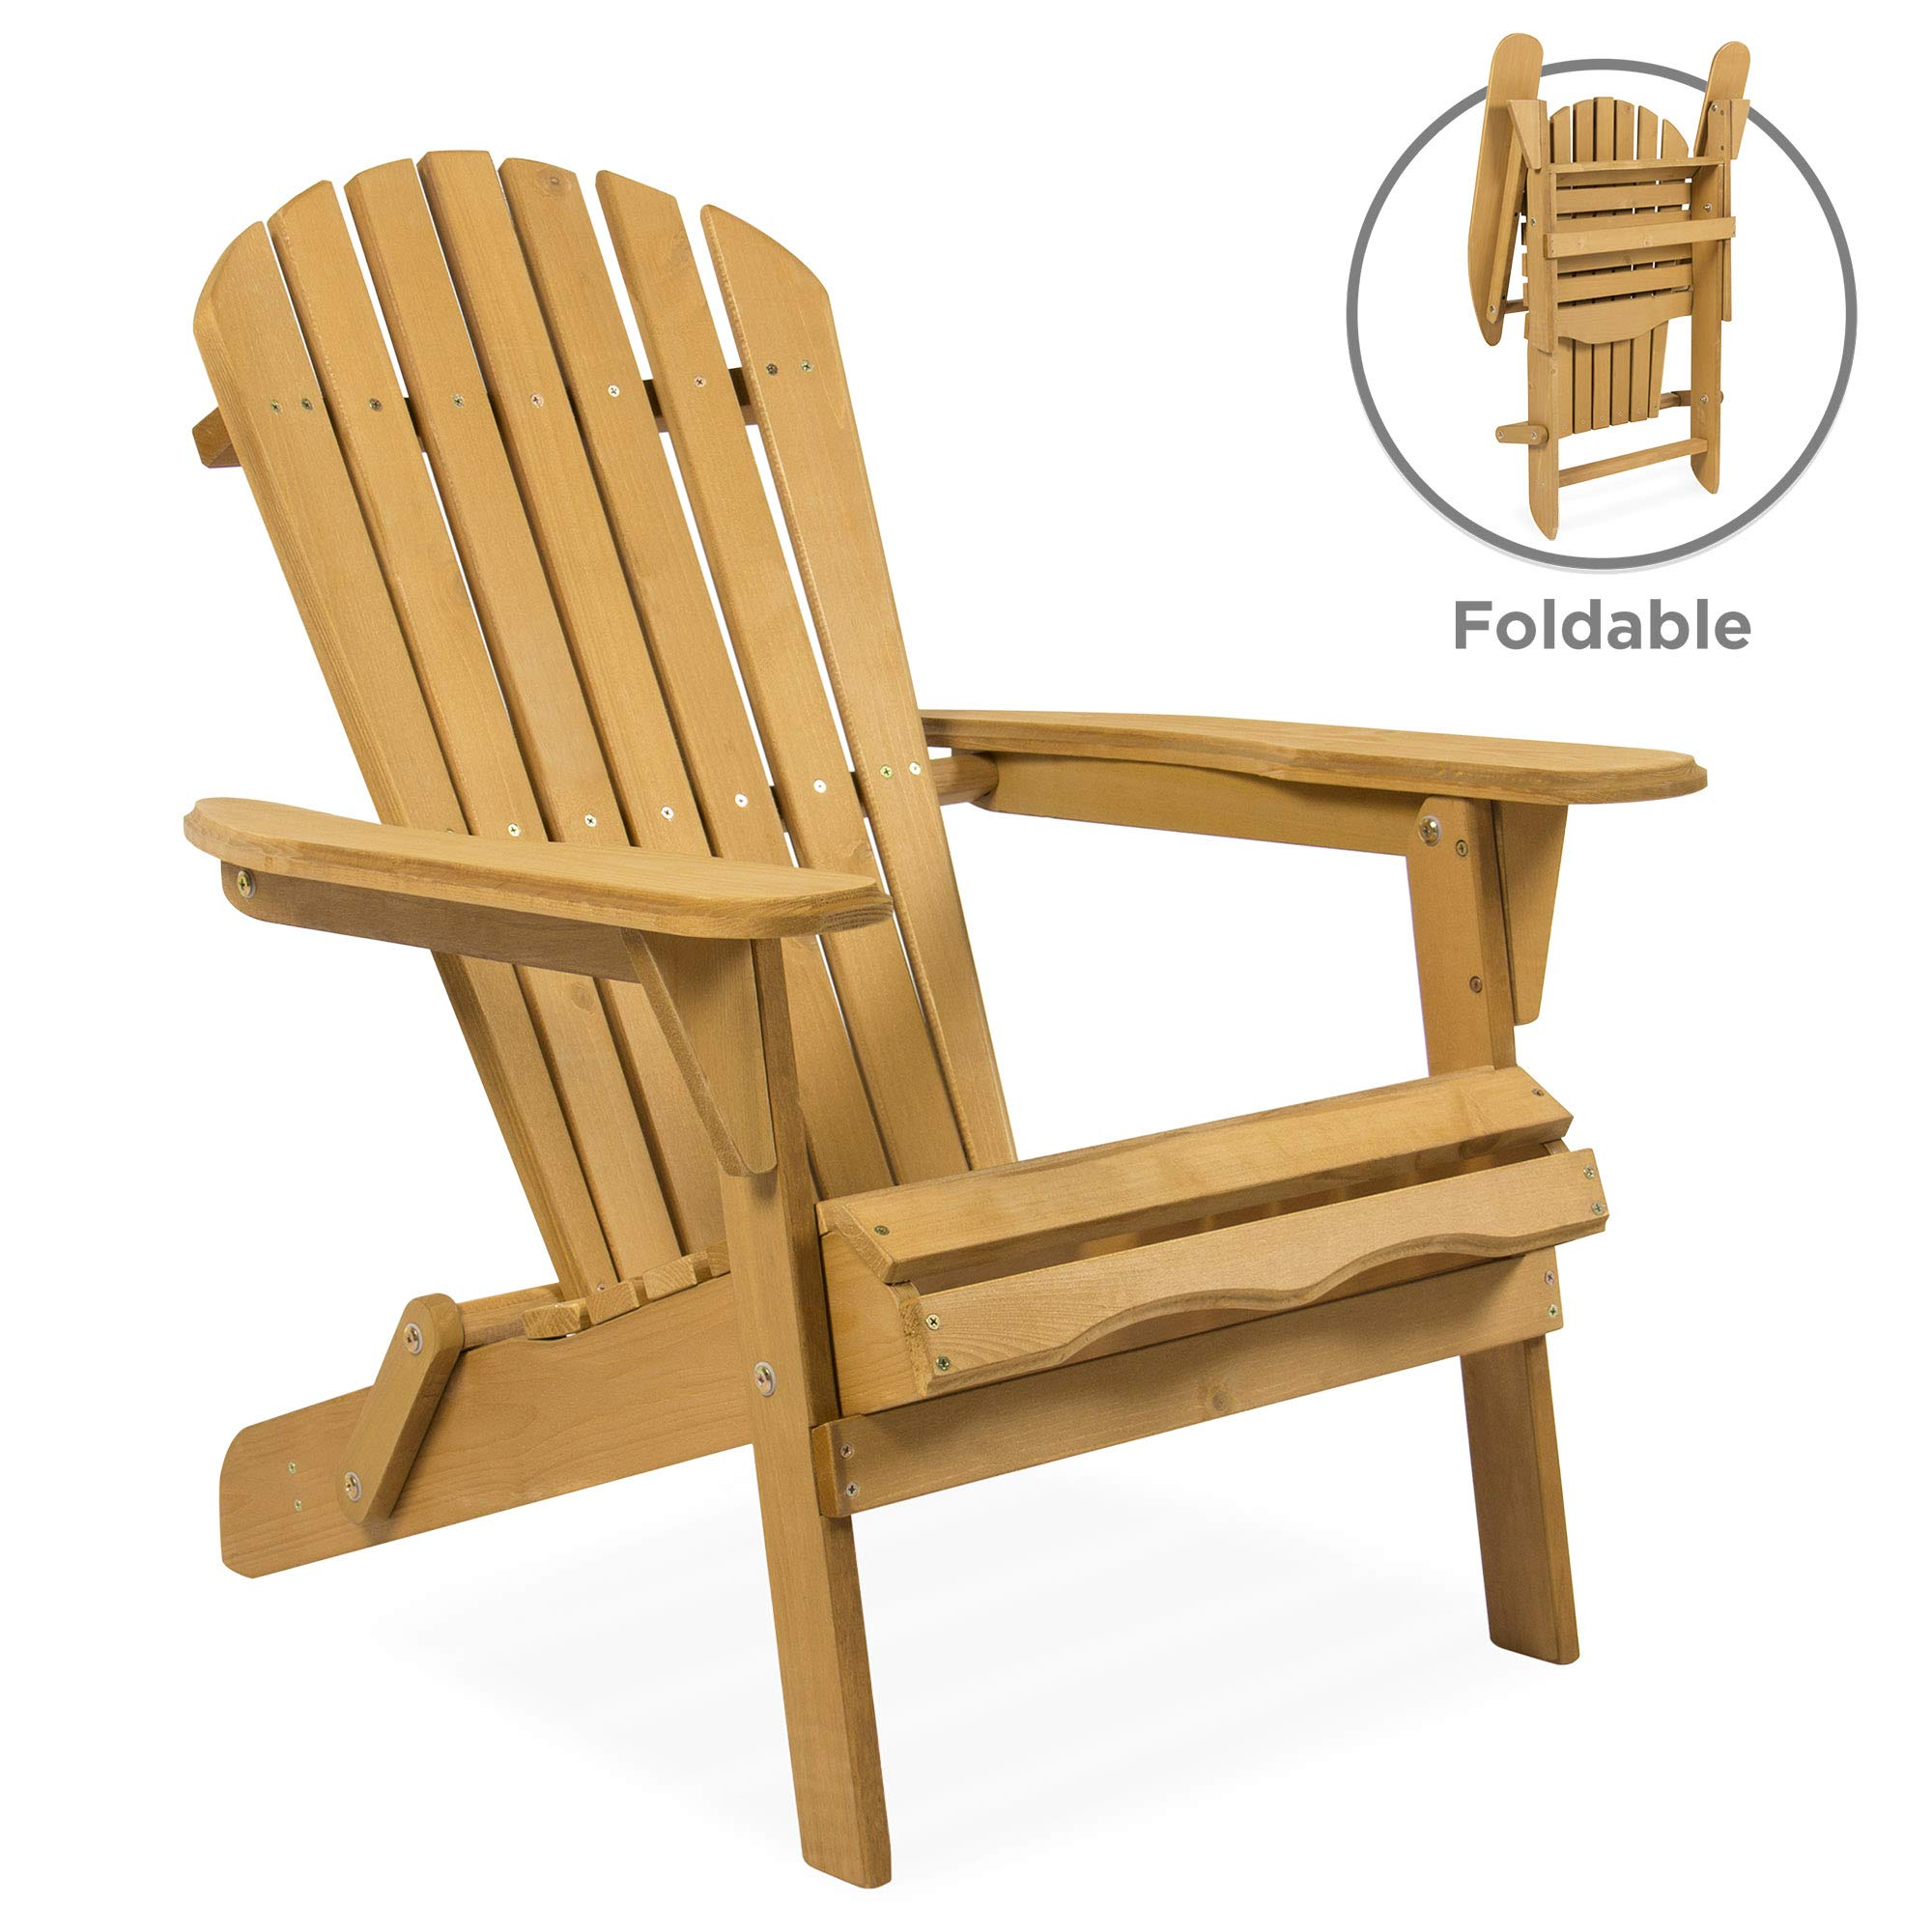 Best Choice Products Folding Wood Adirondack Lounger Chair Accent Furniture for Yard, Patio, Garden w/ Natural Finish, Brown by Best Choice Products